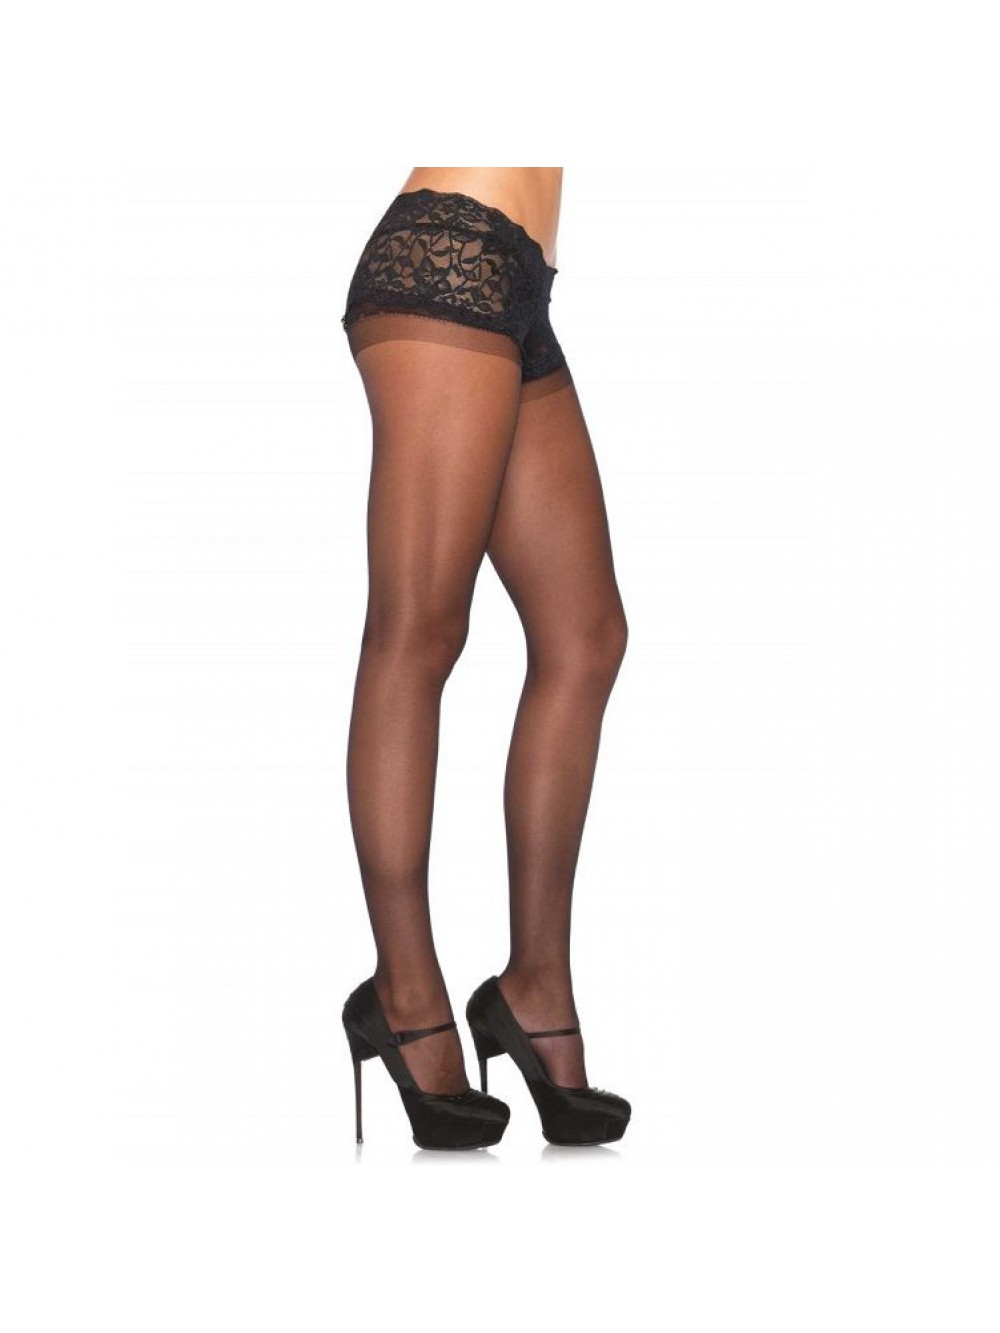 LEG AVENUE PANTYHOSE SHEER